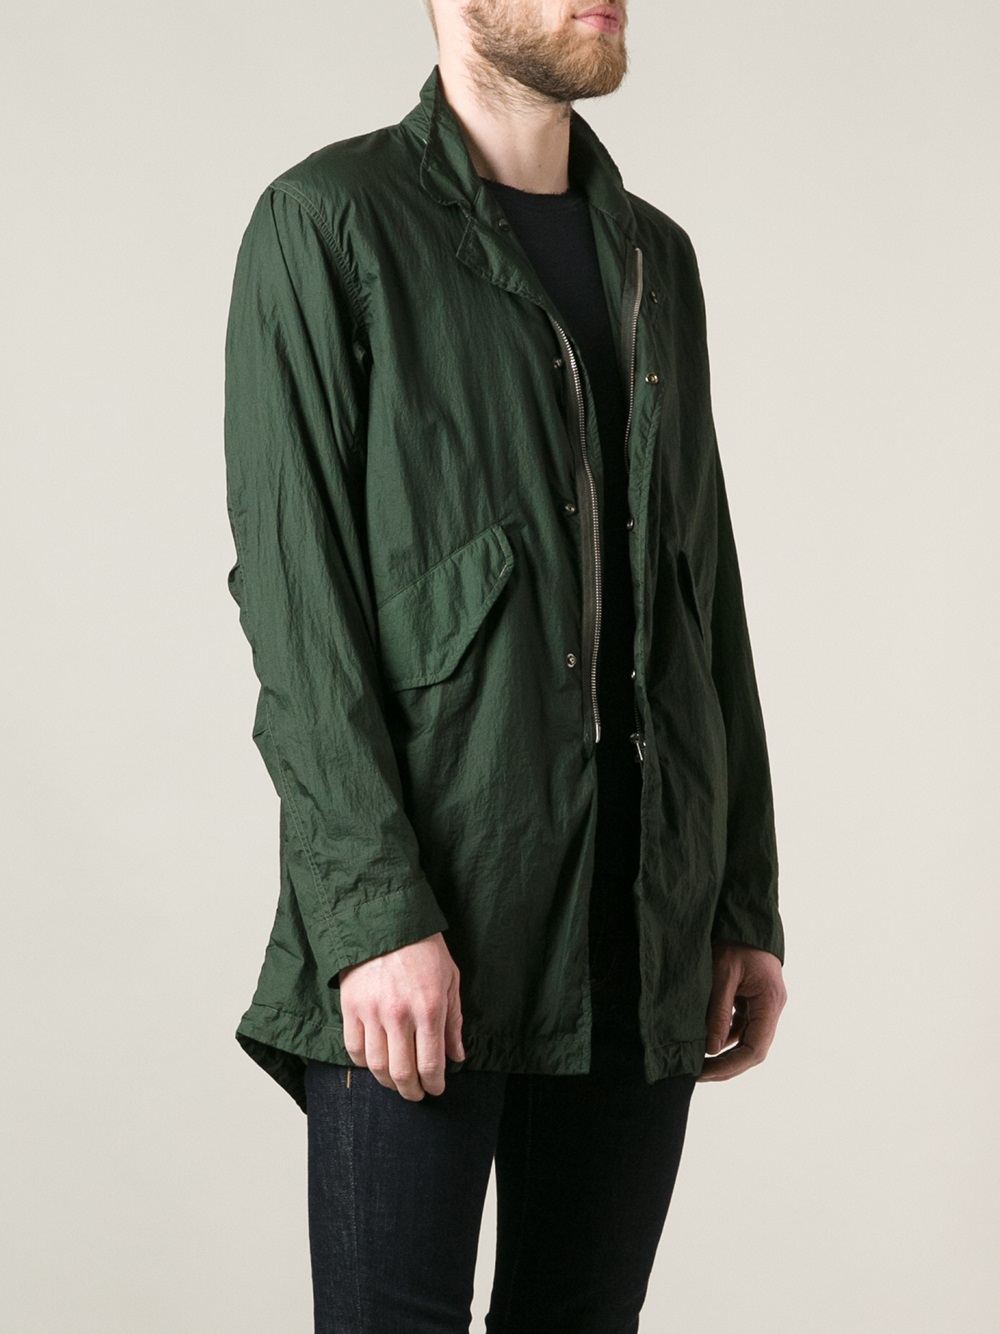 C P Company Fishtail Parka In Green For Men Lyst